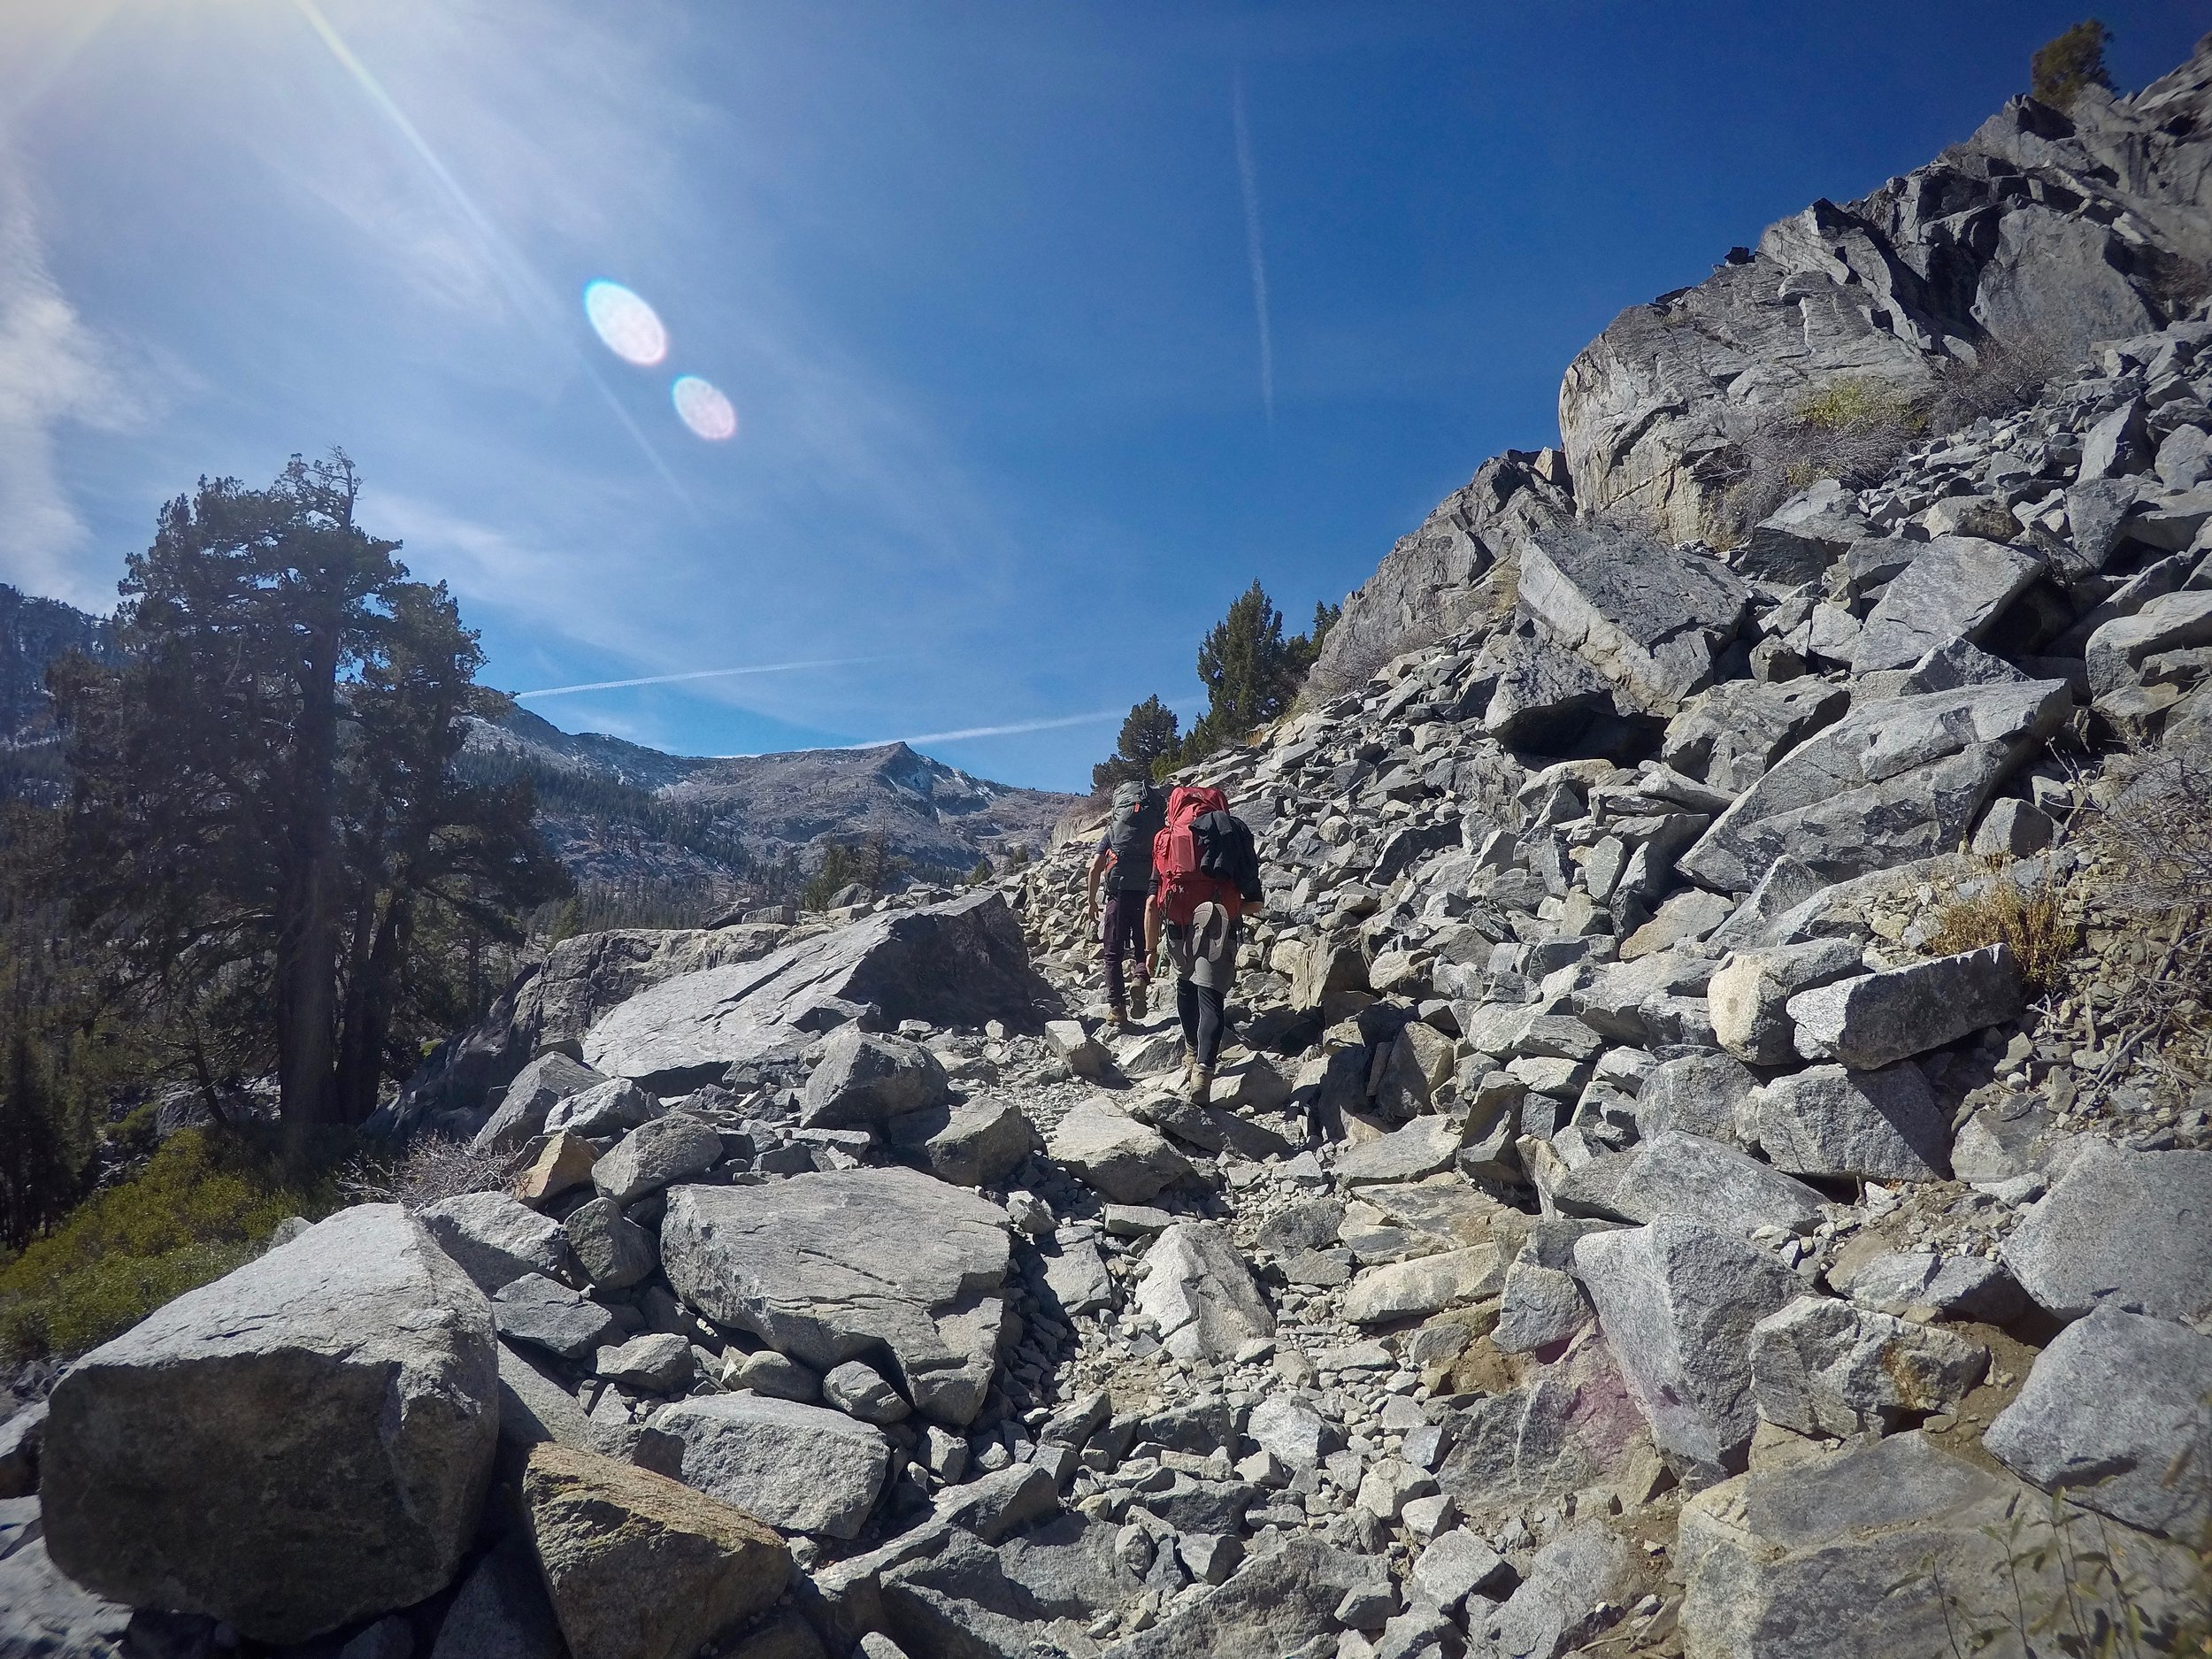 A lot more rocky switchbacks to climb